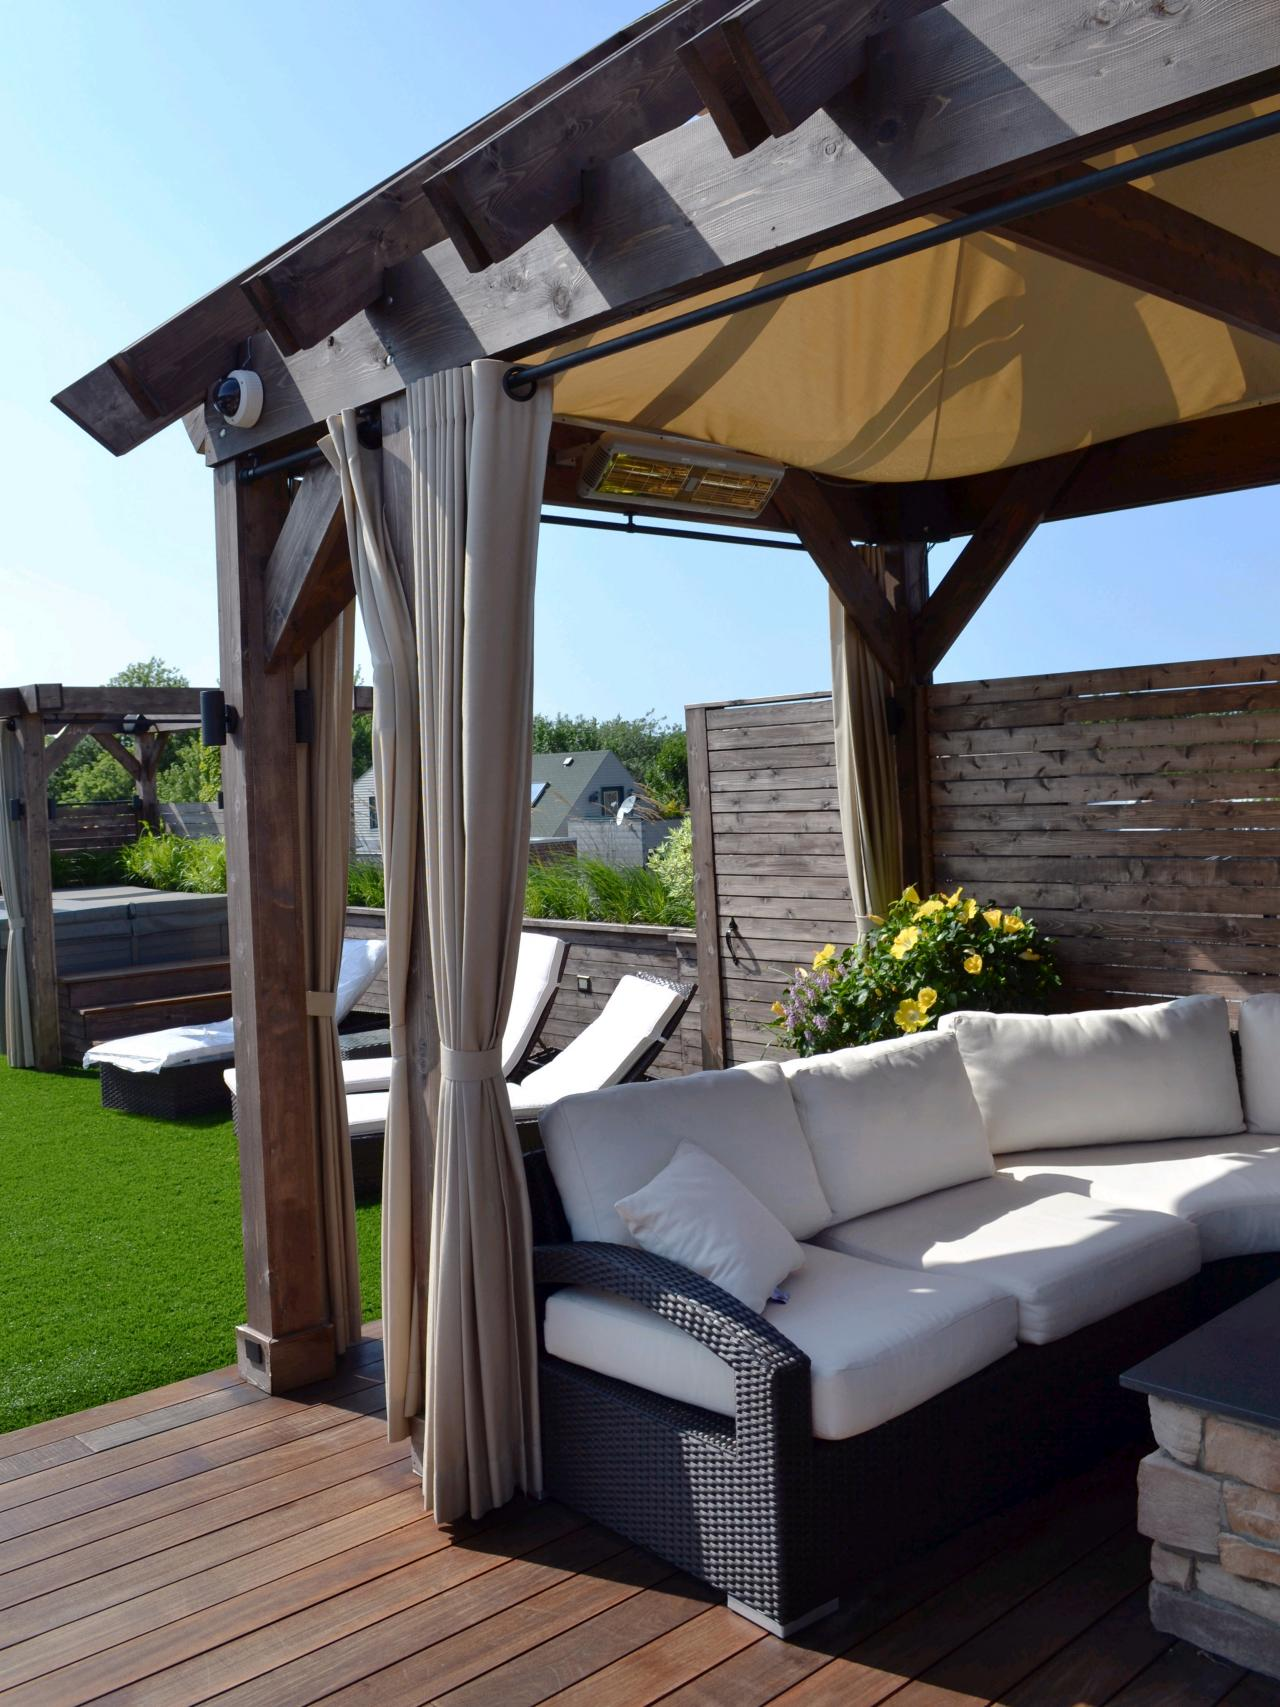 5 DIY Shade Ideas for Your Deck or Patio | HGTVu0027s Decorating u0026 Design Blog | HGTV : deck canopy with screen - memphite.com